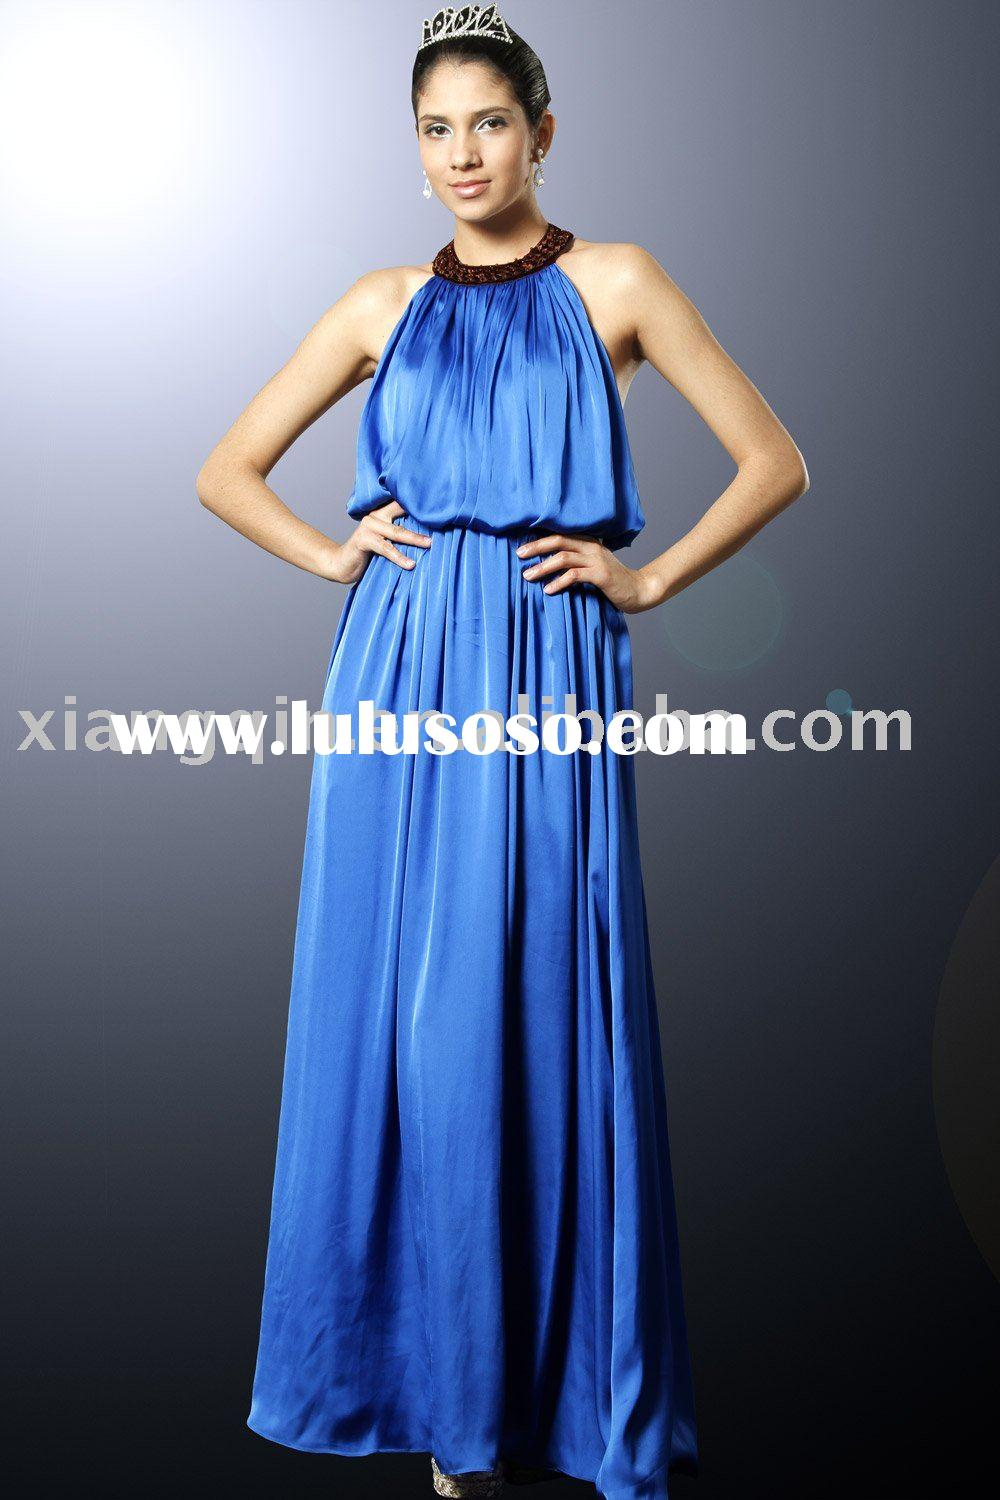 2010 Top Fashion Exquiste Ladies' Party Dress  SM 38